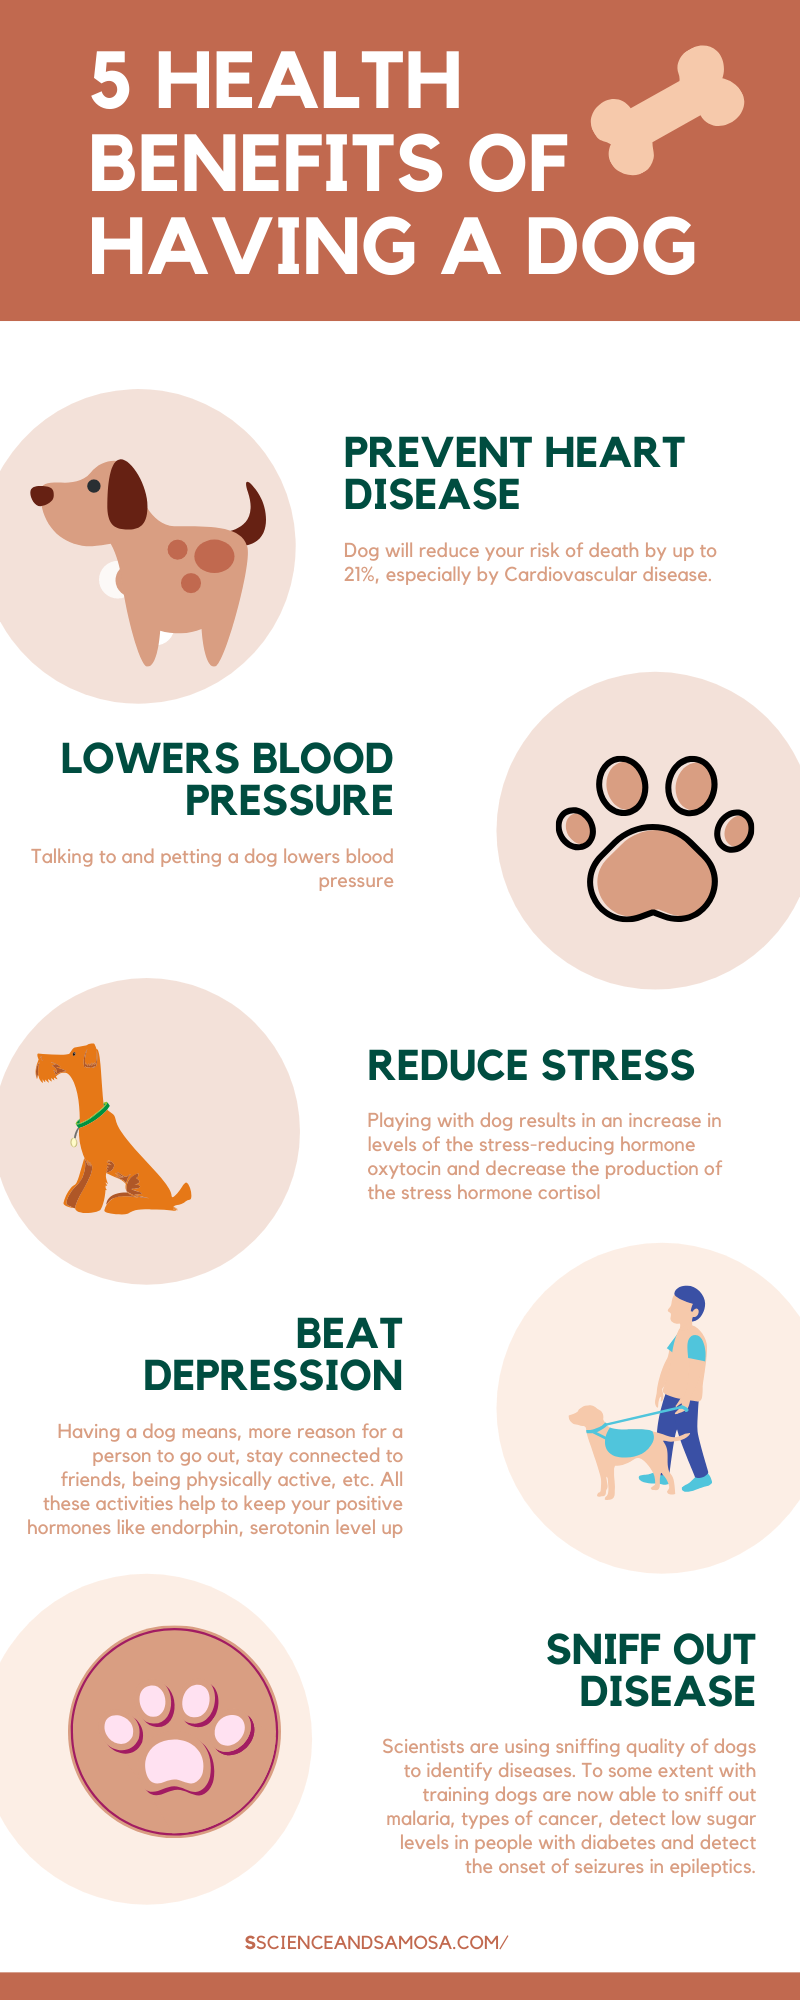 Dog Owner S You Have One More Reason To Rejoice Cardiovascular Disease Cardiovascular Risk Coronary Heart Disease